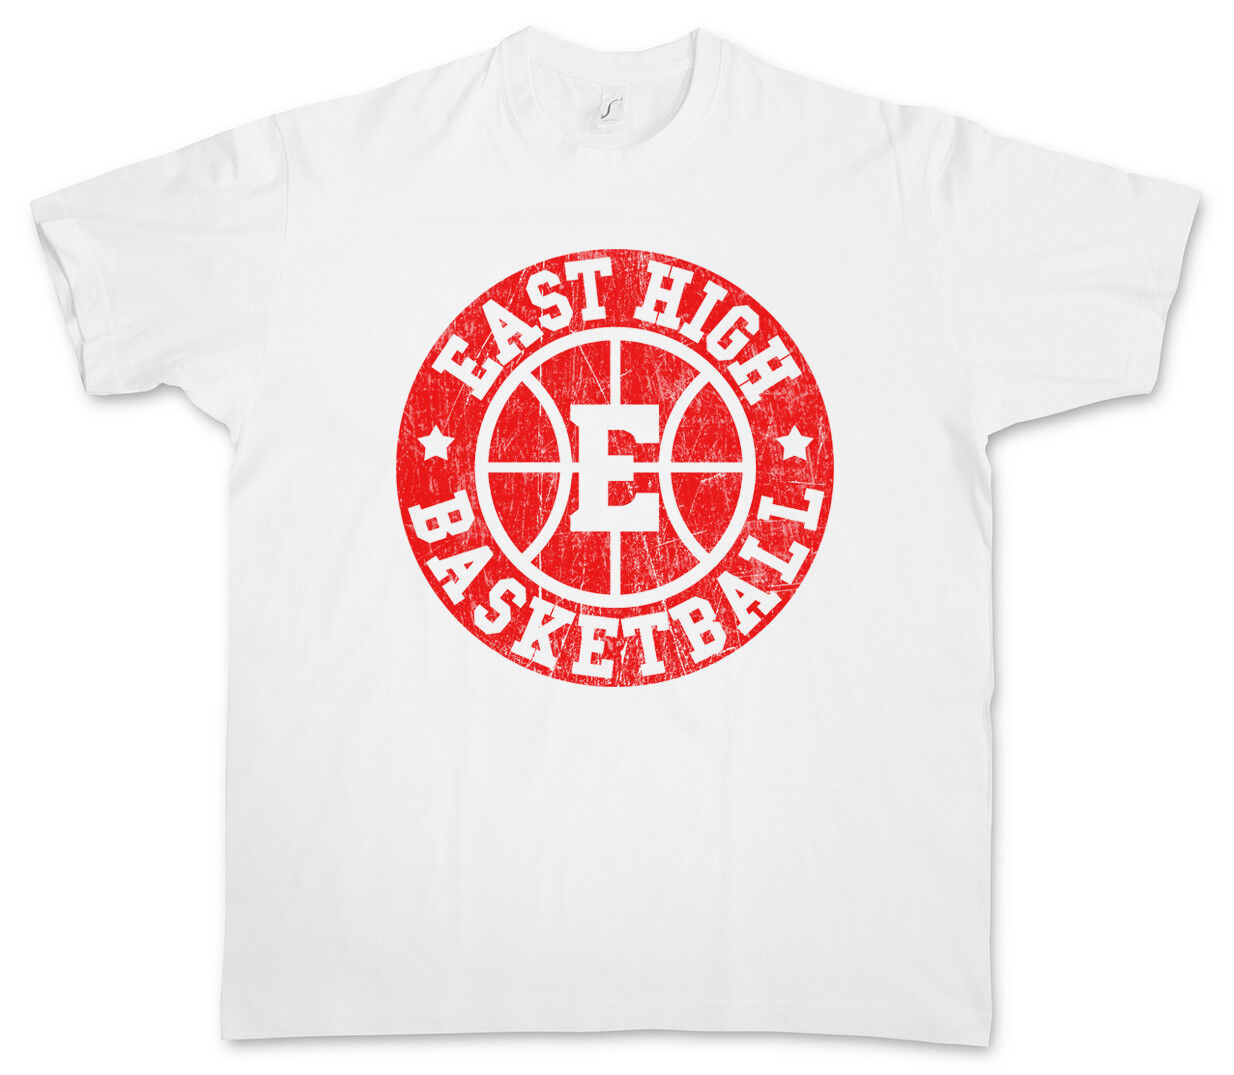 East High basket II T-shirt Logo équipe School Logo T-shirt Sign Symbole Musical c68e8c